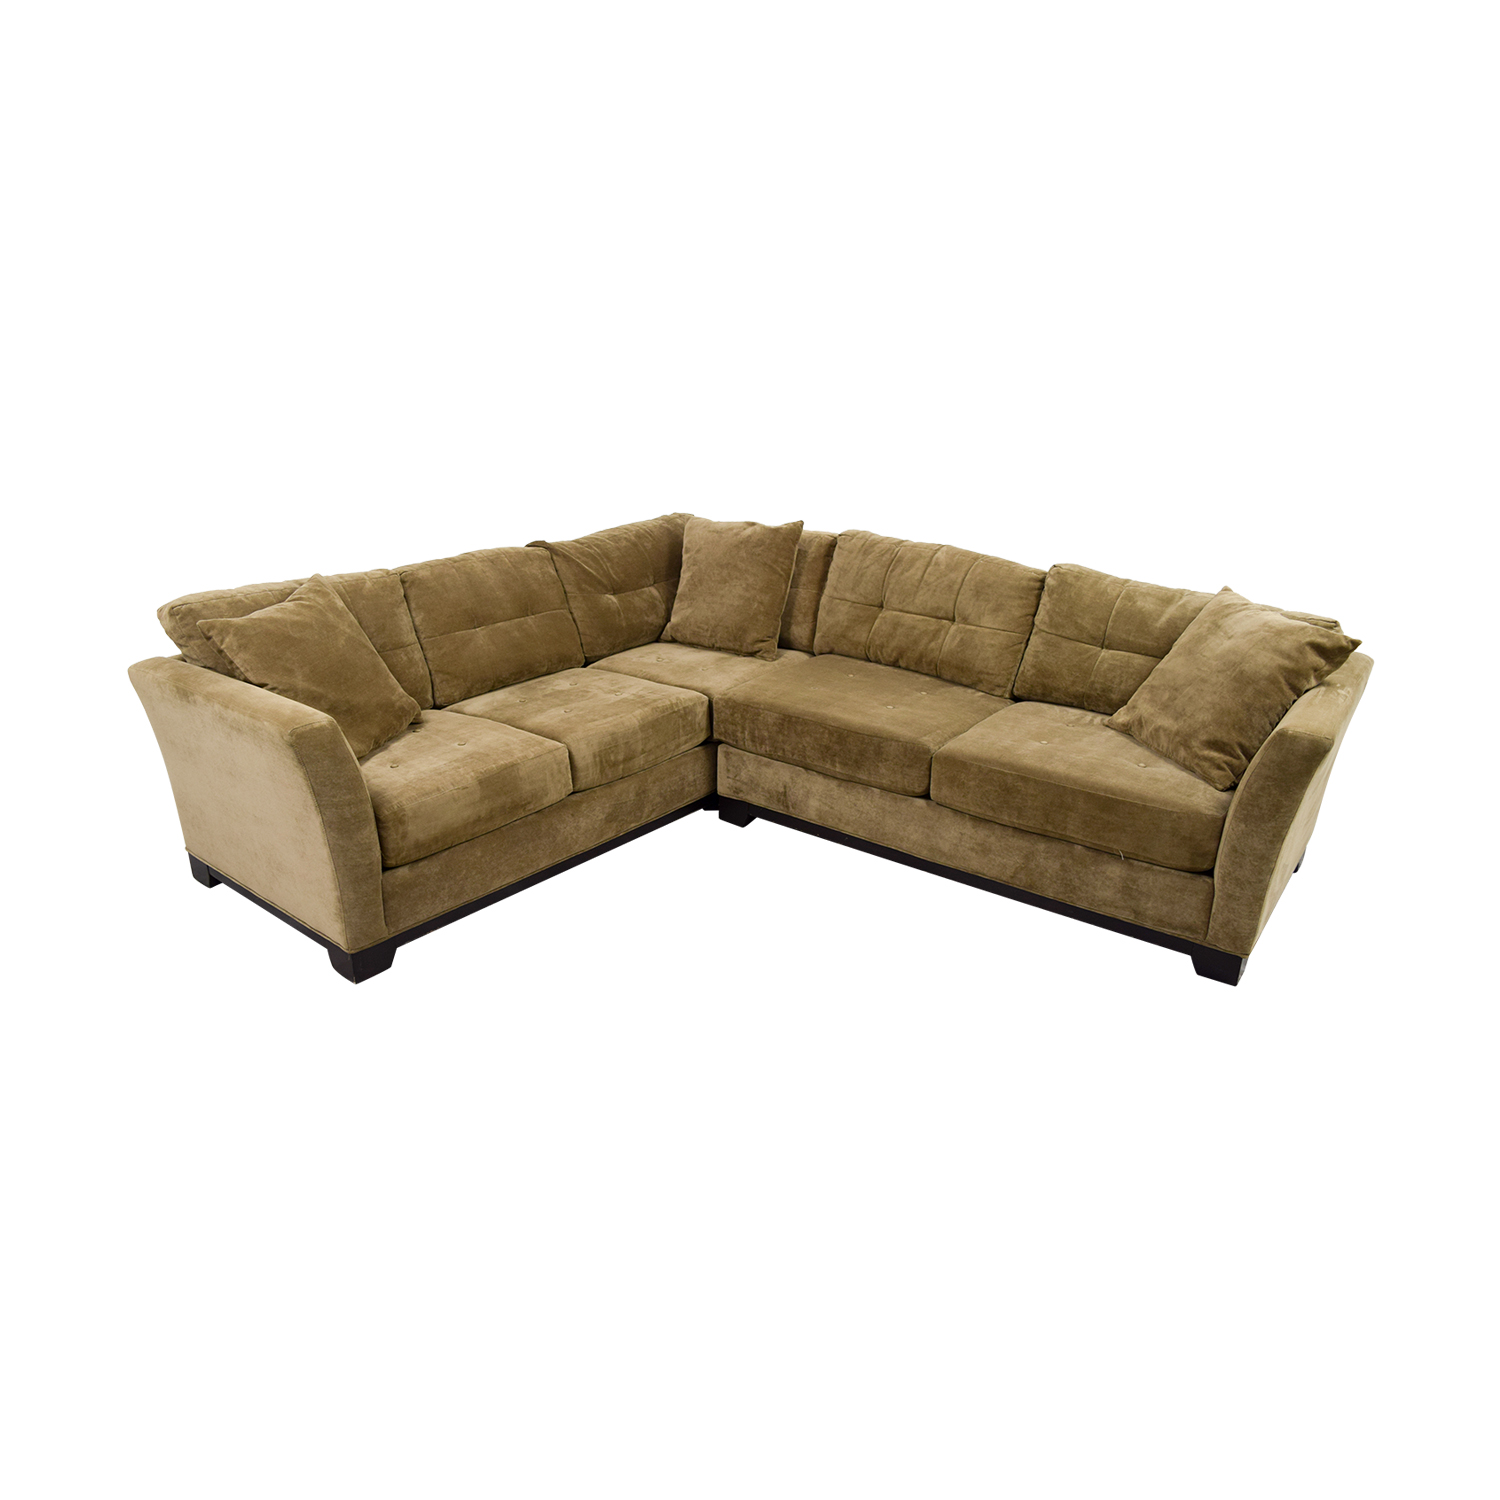 Used sectional sofa sectional sofa design brilliant ideas for Sectional couch